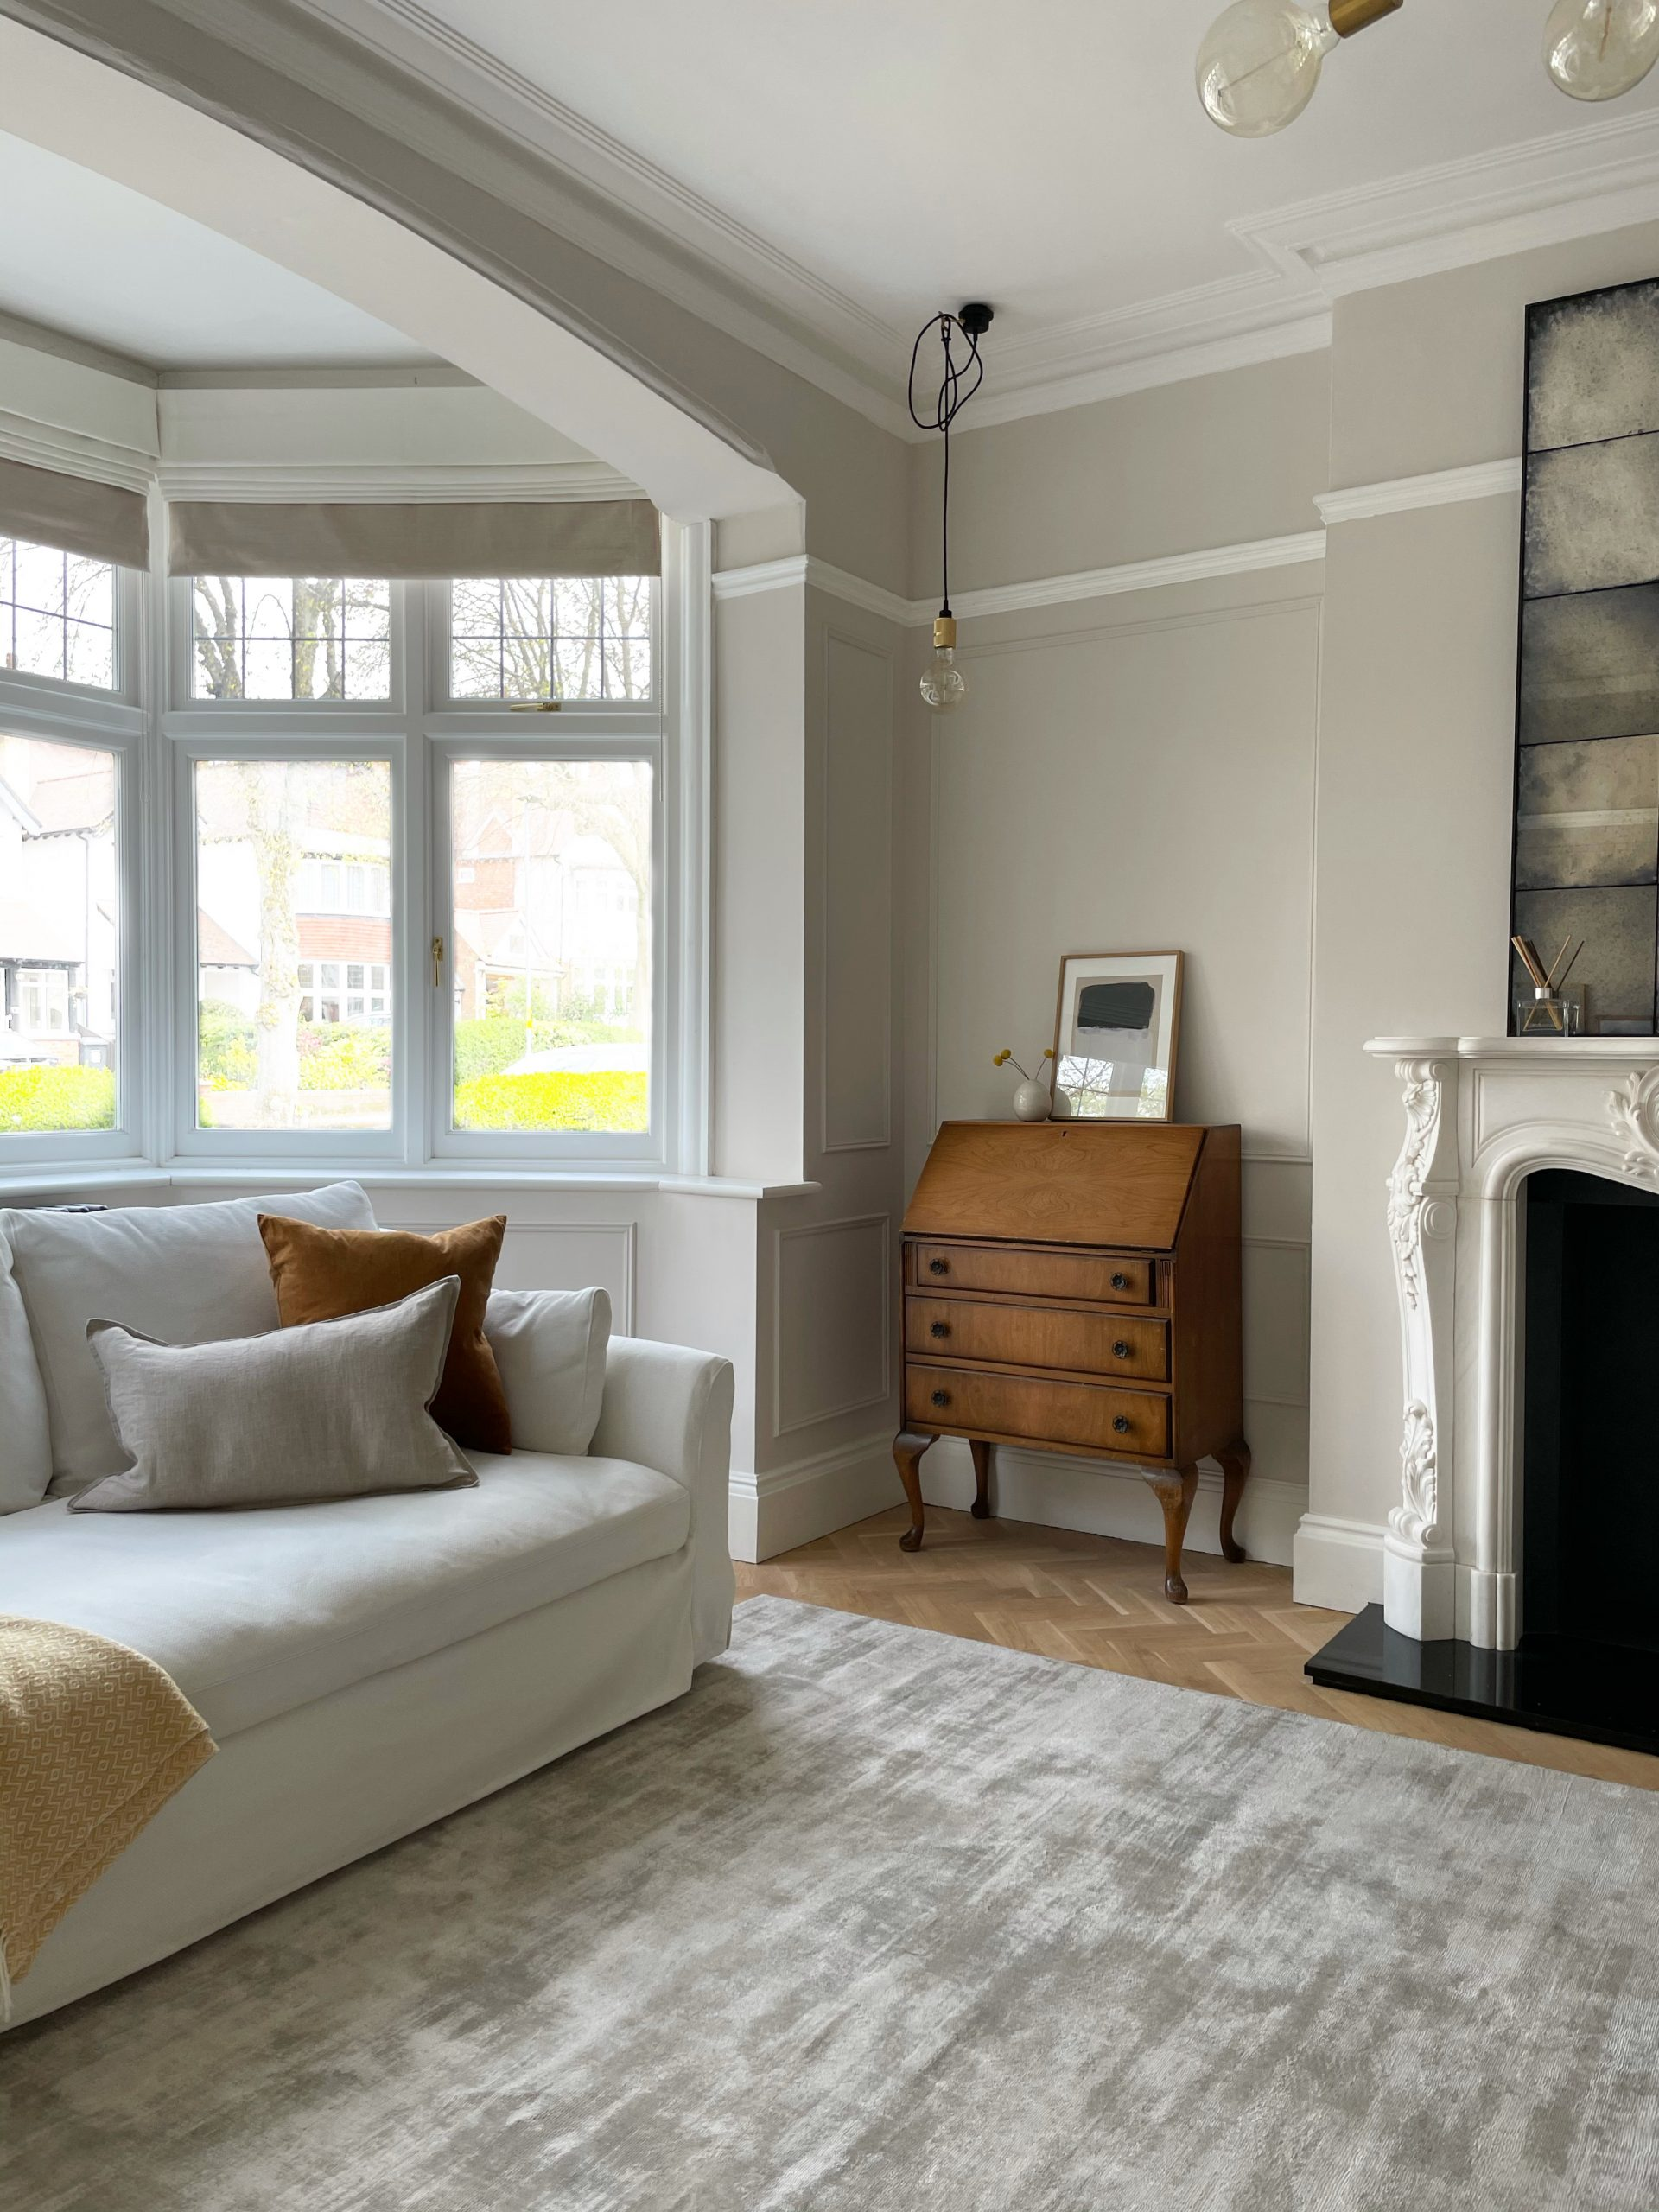 Feather Pillow is a warm neutral paint colour ideal for large living rooms